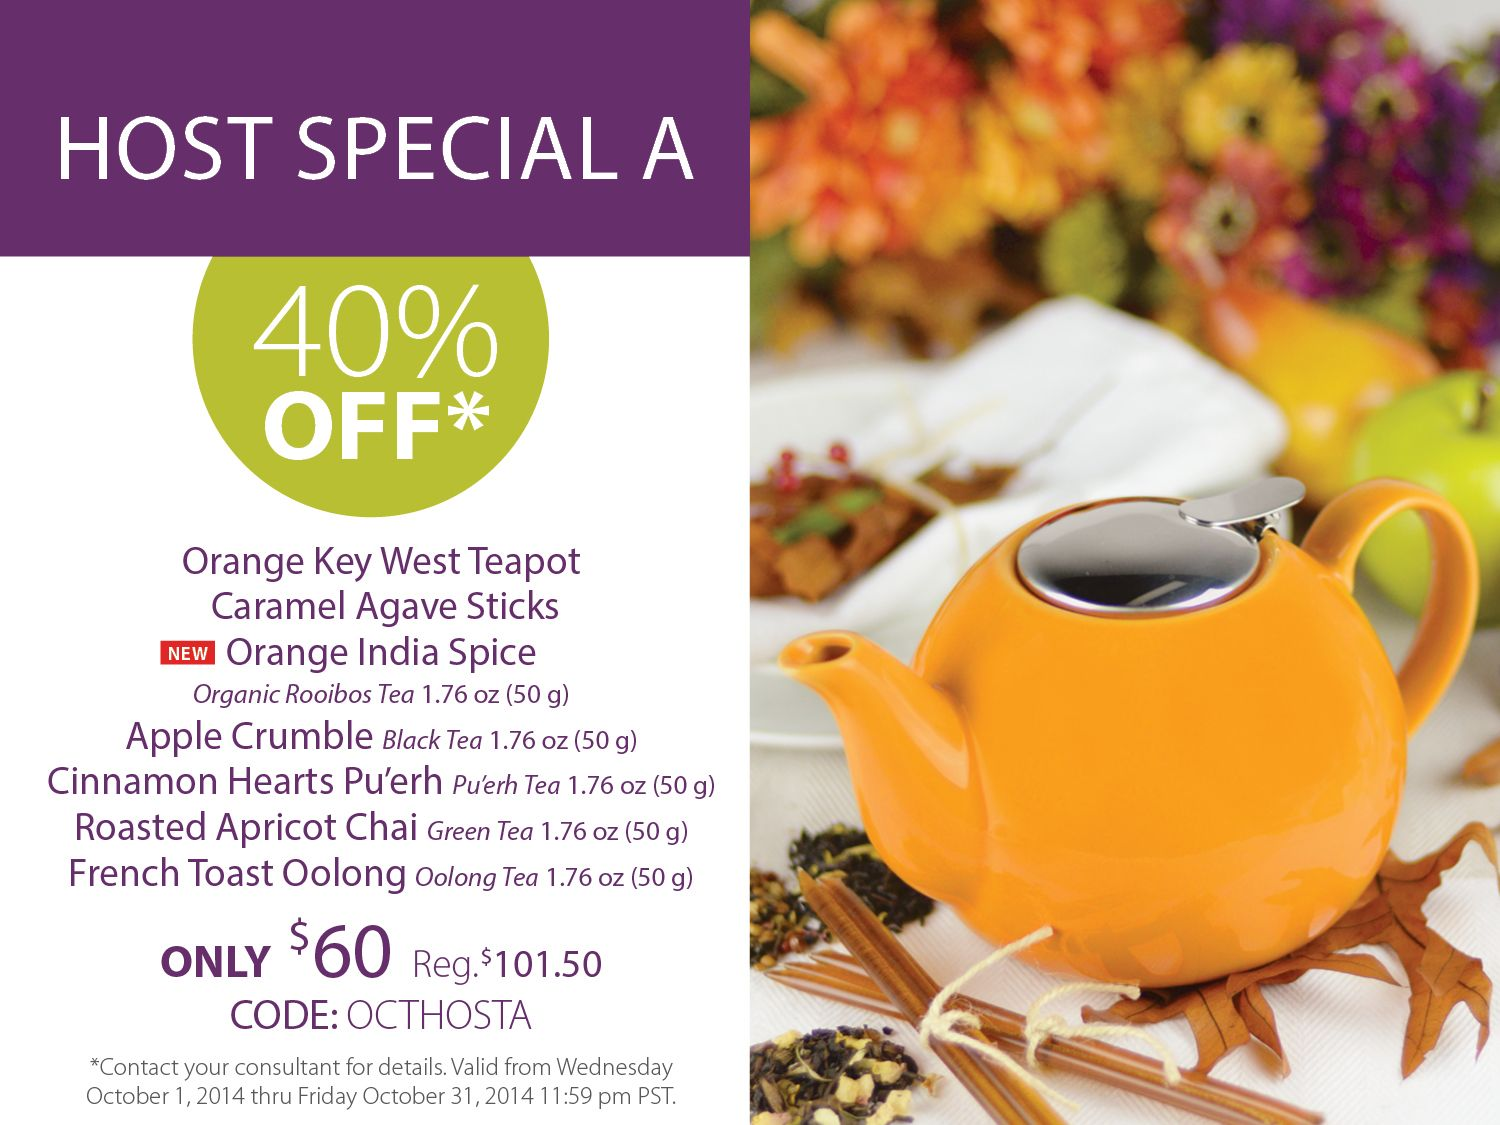 Host a Steeped Tea Party and you can purchase this Host Special, which includes five teas, our Key West Orange Teapot and agave sticks, all at 40% off!